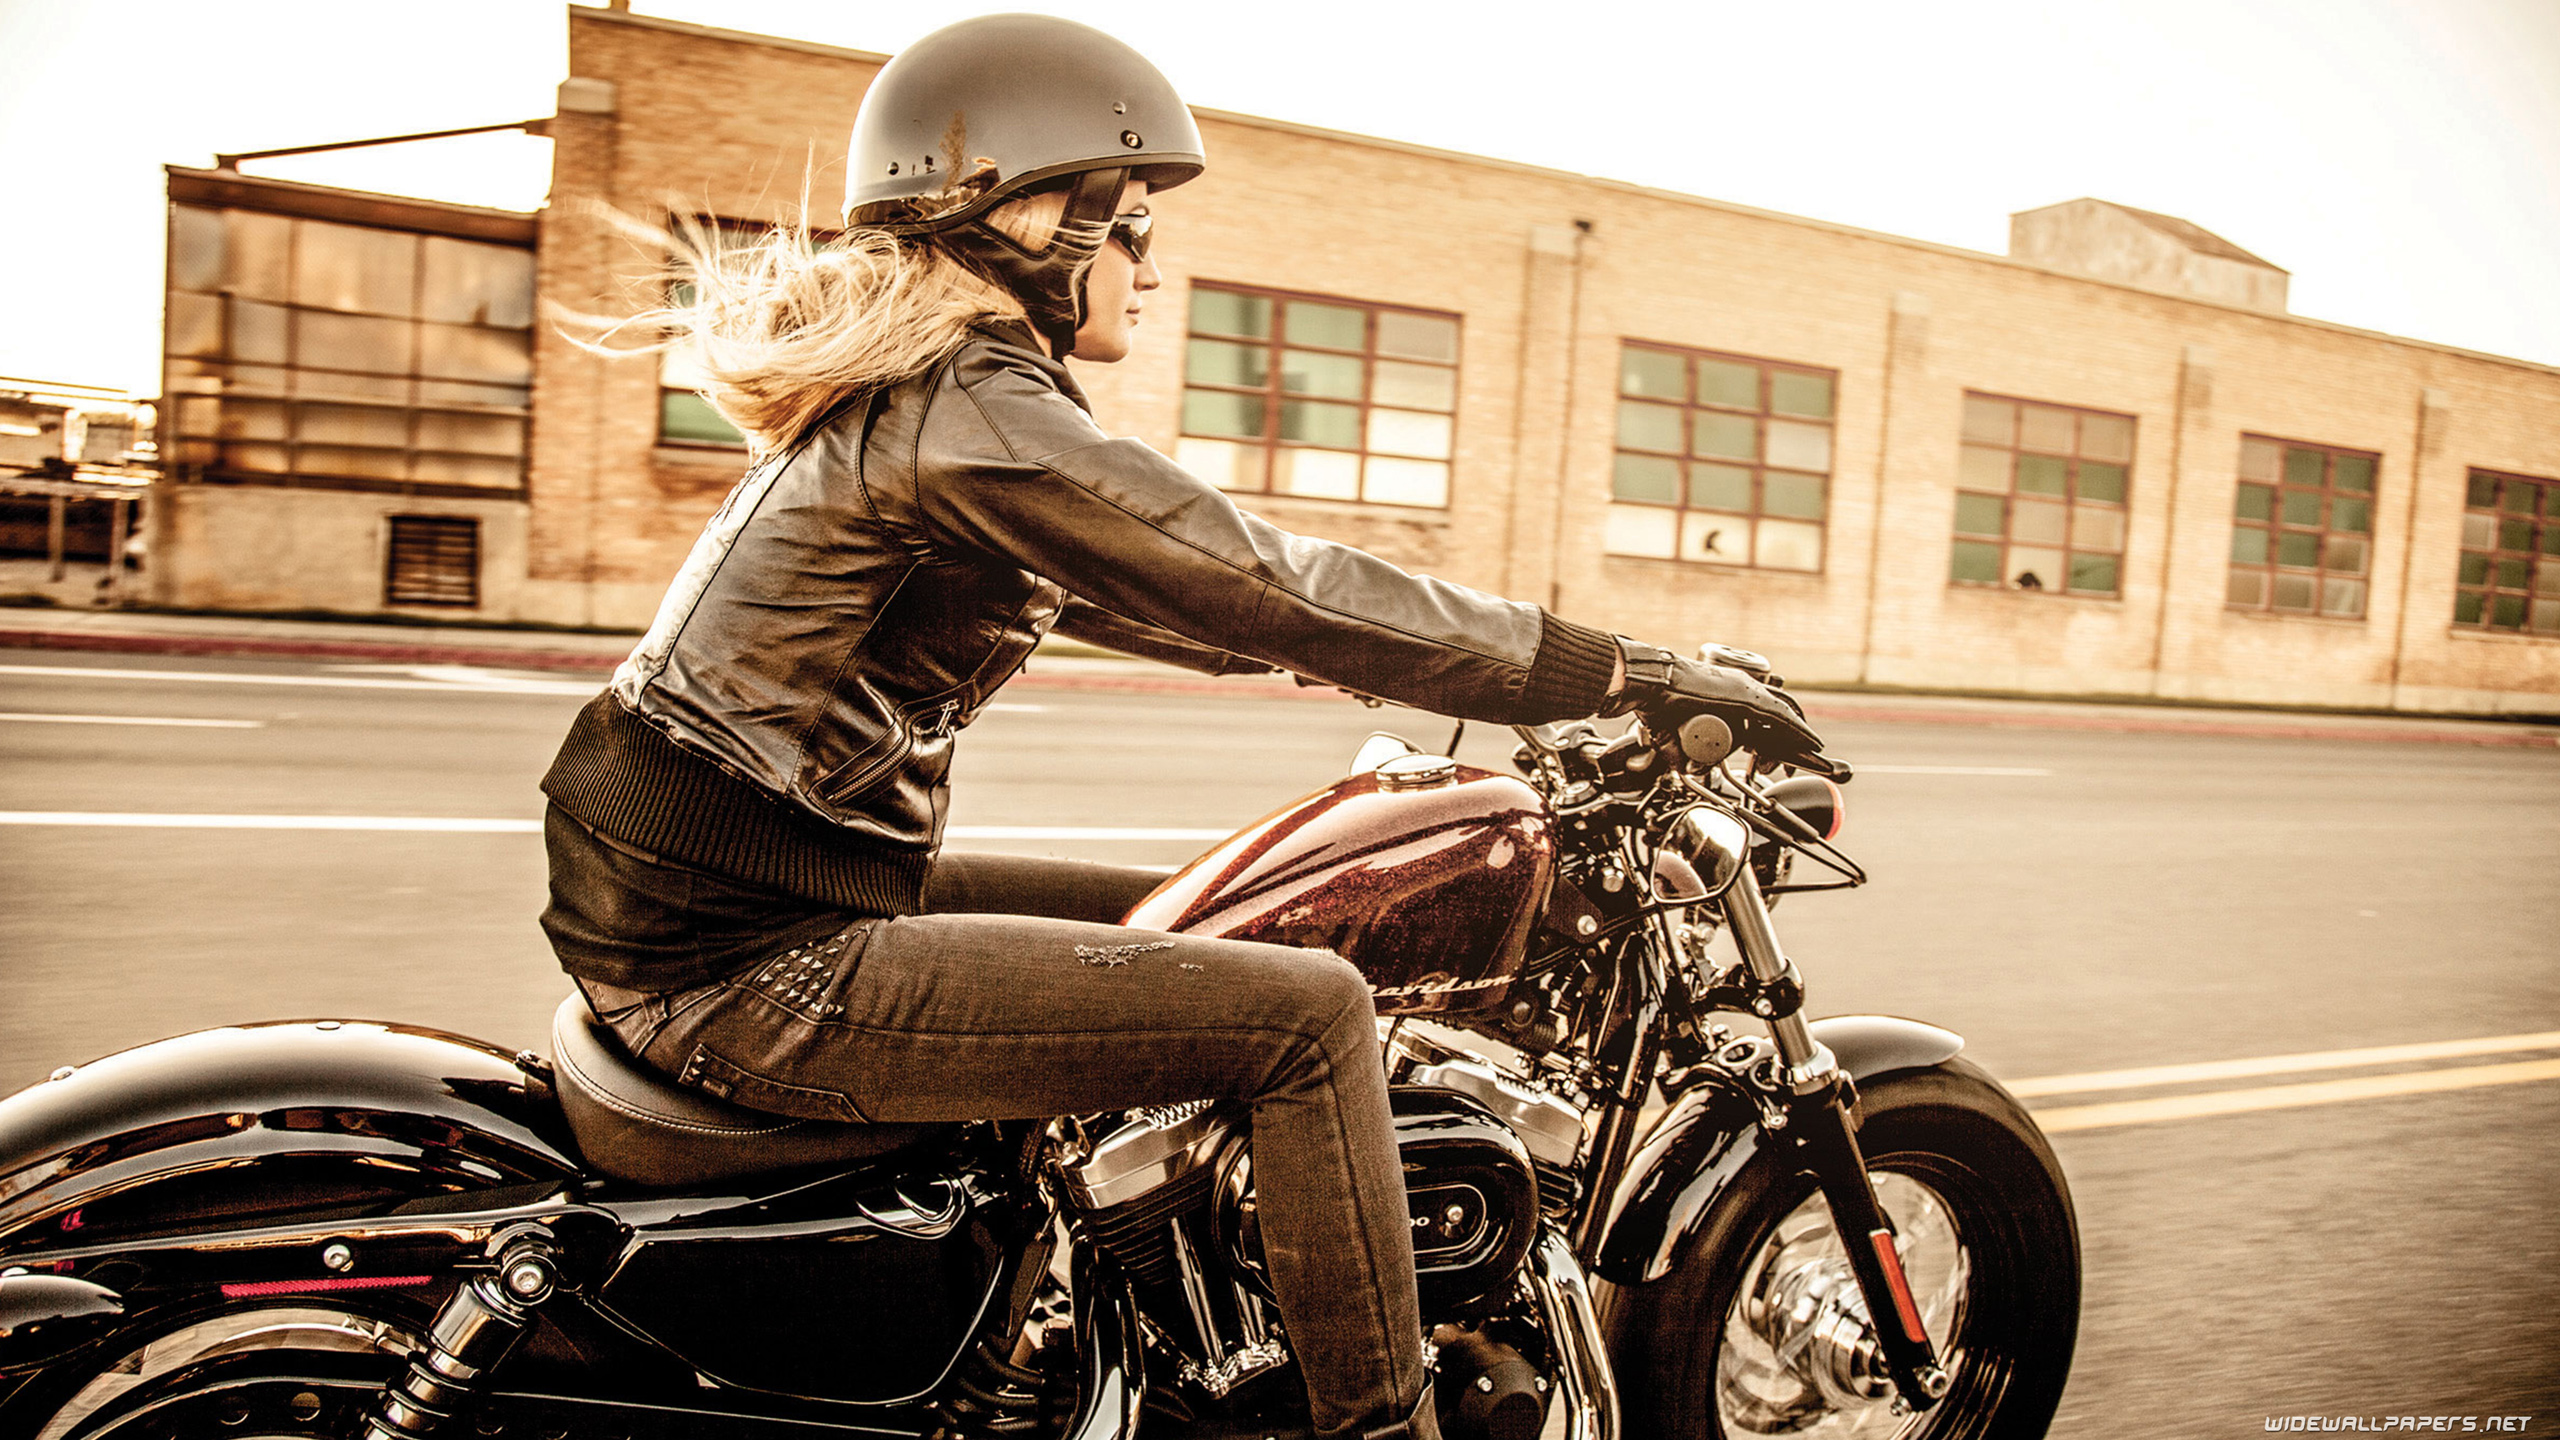 Motorcycle Wallpapers 4K Ultra HD Sportster 1200X Forty Eight 2560x1440 2560x1600 3840x2160